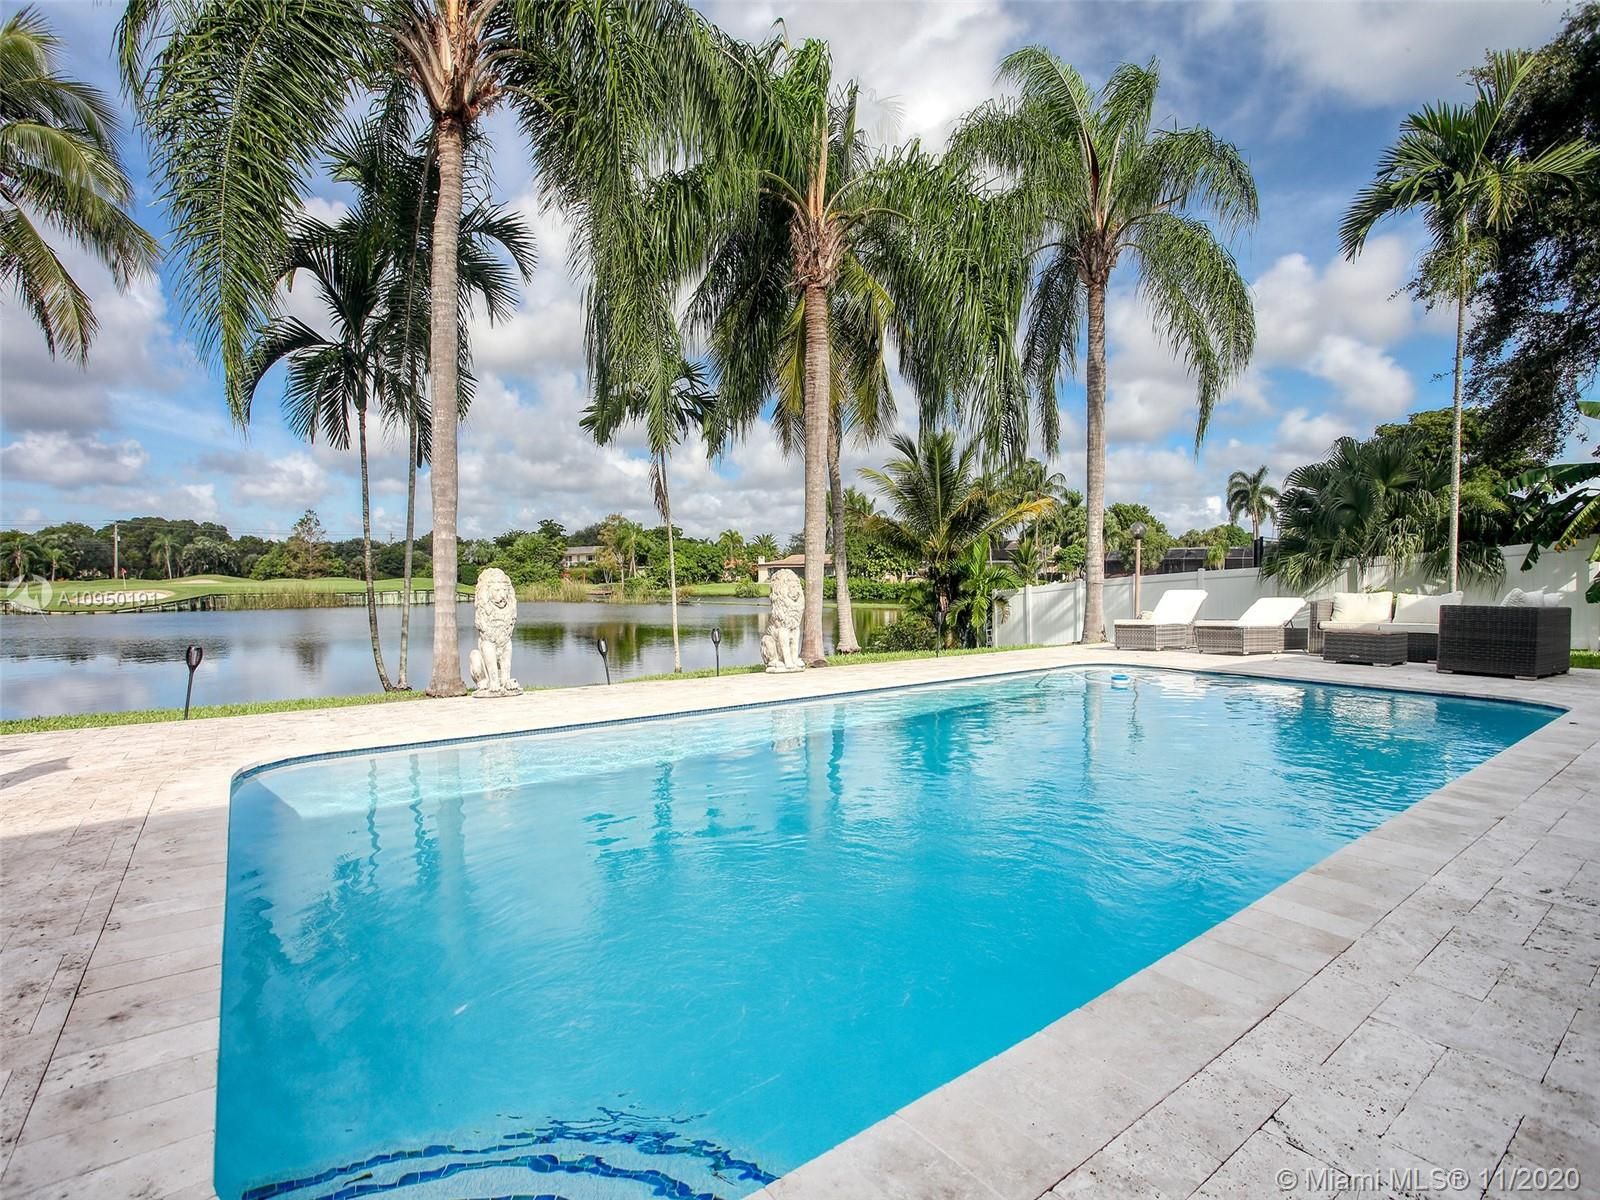 LOCATION LOCATION...MAGNIFICENT ONE STORY 5 BDR 4 BATH *PLUS* GAME ROOM/OFFICE IN DESIRABLE EMERALD HILLS. SOAK UP THE FLORIDIAN SUN BY THE NEWLY RESURFACED POOL AND THE BREATHTAKING VIEW OF THE LAKE & GOLF COURSE. ENTIRE HOUSE WAS TASTEFULLY REMODELED WITH A CHEF'S DREAM KITCHEN FEATURES A HUGE ISLAND WITH CABINETS ON BOTH SIDES, HIGH-END APPLIANCES & FLUSH CEILING HOOD. SPACIOUS LIVING SPACE WITH 2 SETS OF SLIDING DOORS TO ENJOY INDOOR/OUTDOOR ENTERTAINMENT. 2 CAR GARAGE & 12+ CARS CIRCULAR DRWY. ALL NEW SEWER LINES, ALL NEW PLUMBING LINES, ALL NEW ELECTRIC WIRING & ELECTRIC BOXES, 2 NEW A/C'S & NEW A/C DUCTS, SOME HURRICANE IMPACT WINDOWS, TOO MANY UPDATES TO LIST...BRING IN YOUR MOST SPOILED BUYERS. CLOSE TO HWY,  AVENTURA MALL & SAWGRASS.  *WALKING DISTANCE TO MANY HOUSE OF WORSHIP*